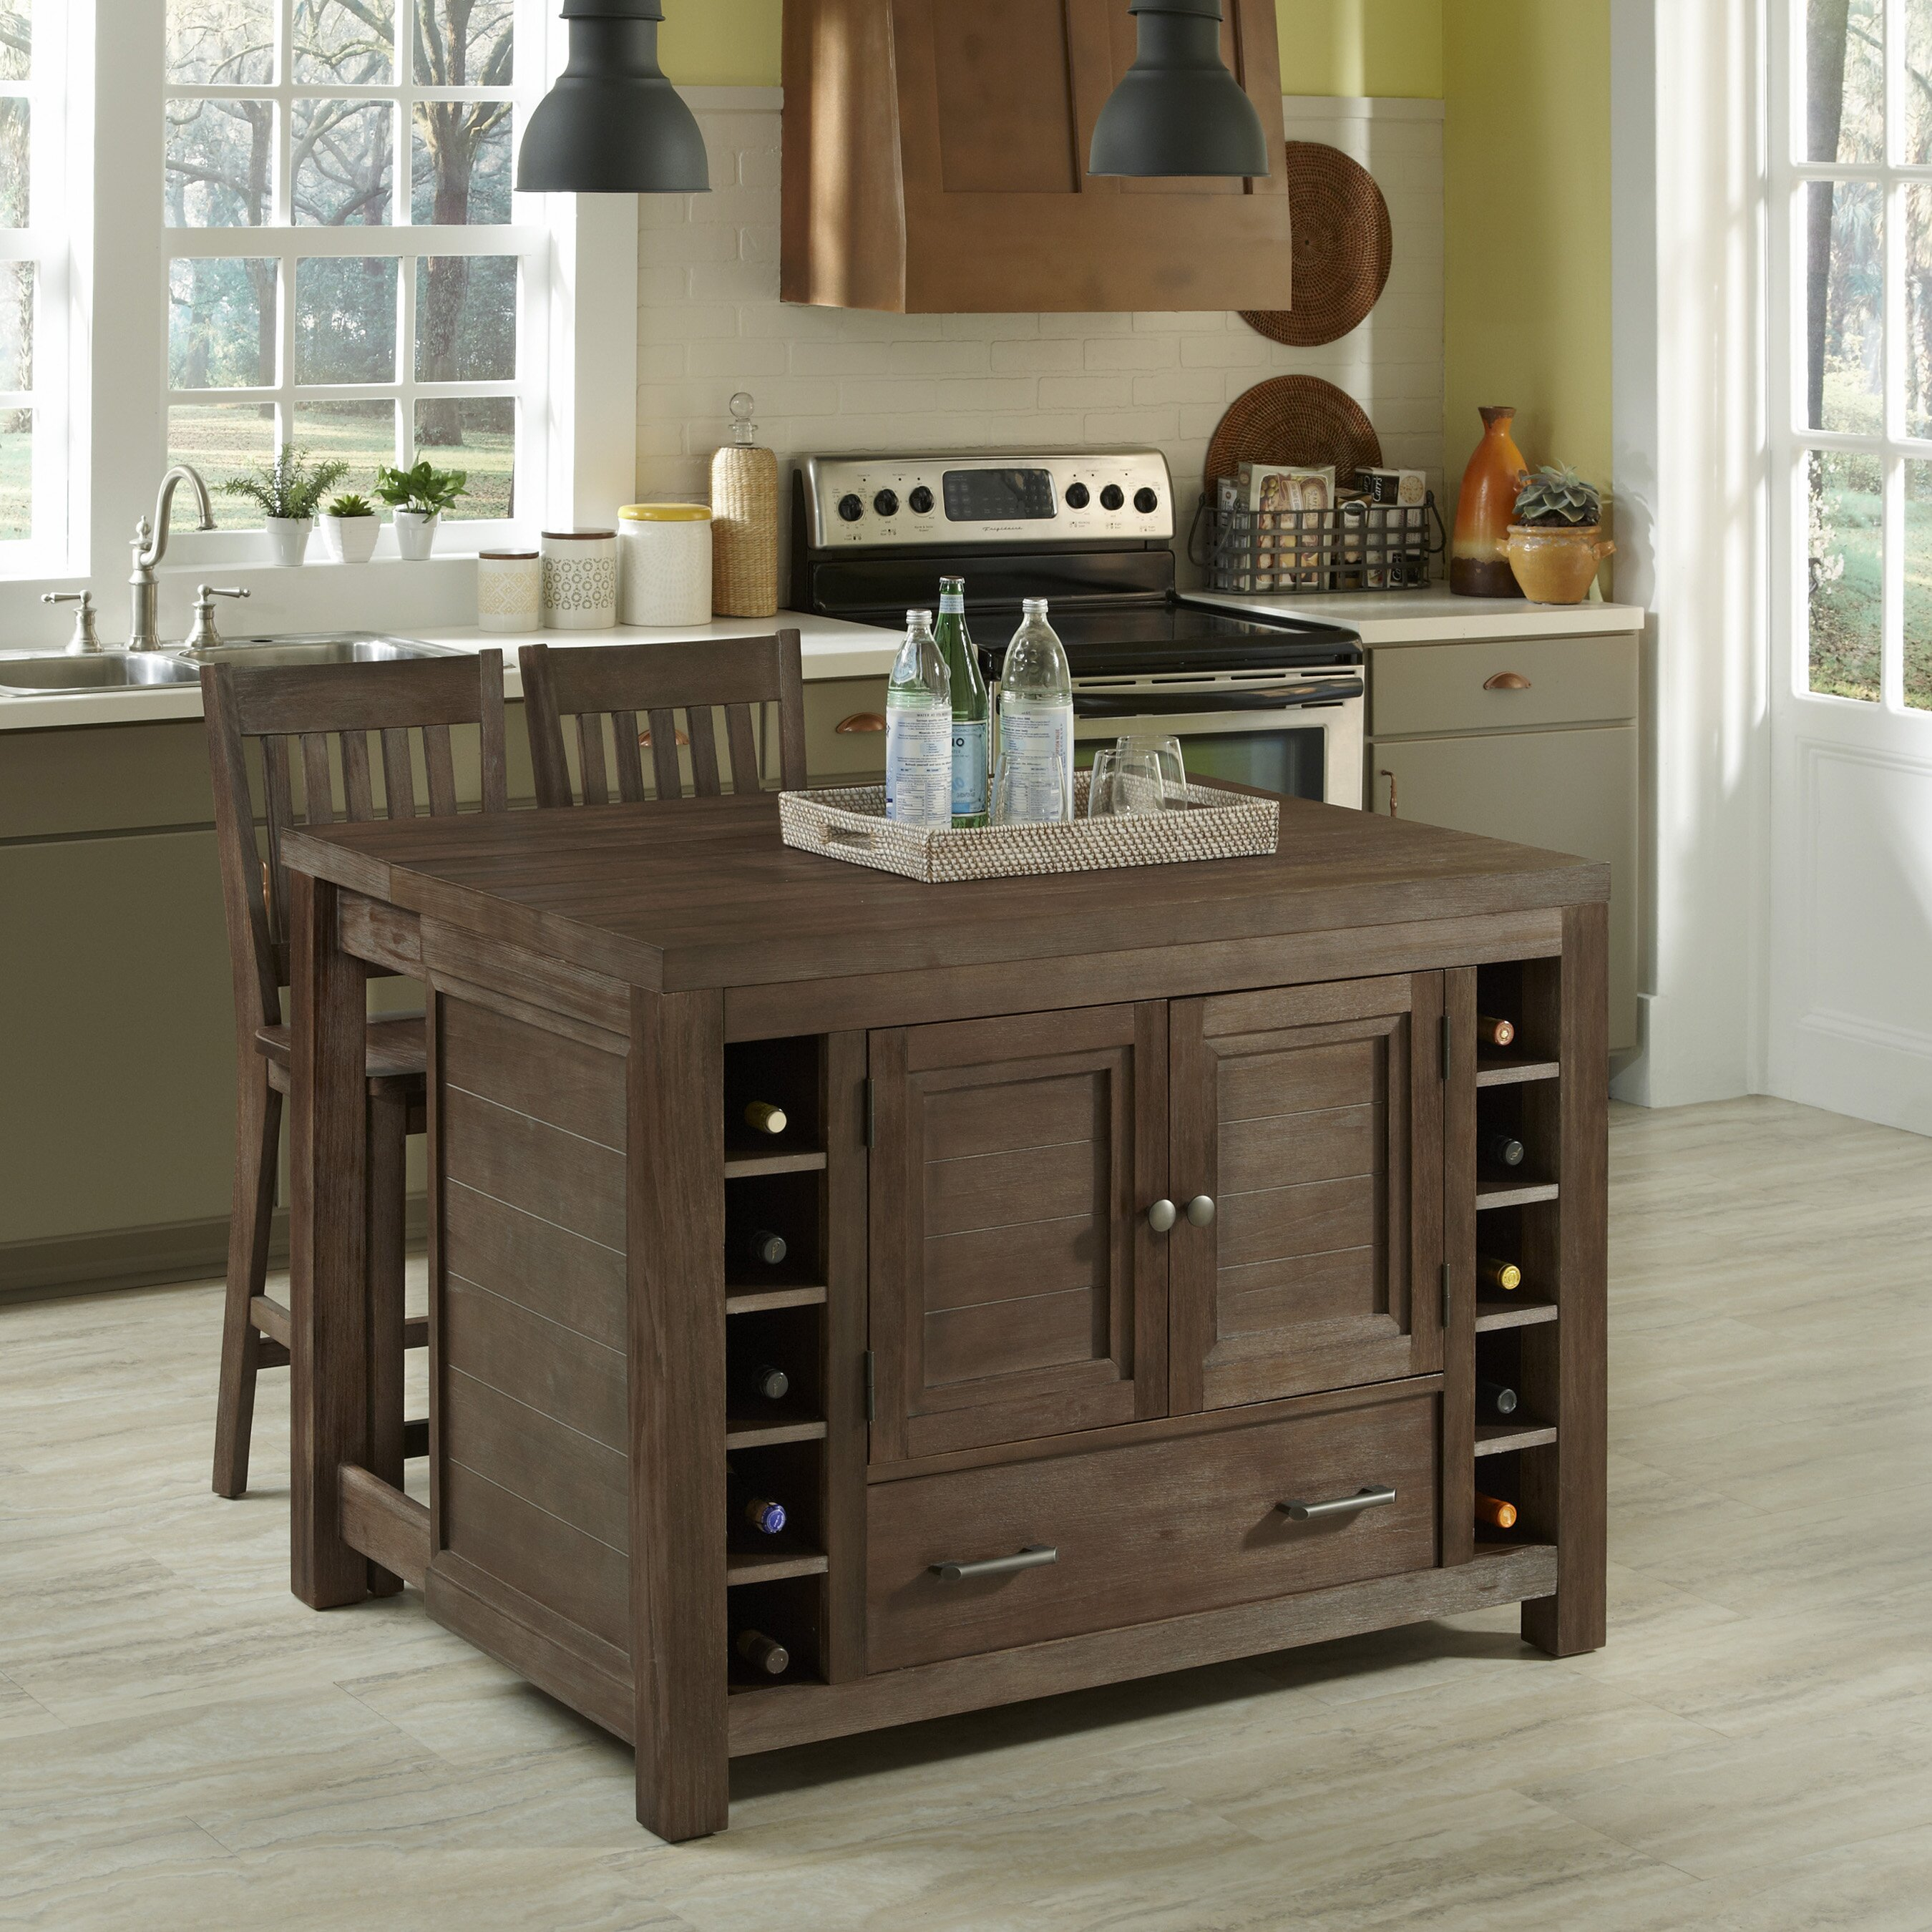 Home Styles Barnside Kitchen Island & Reviews